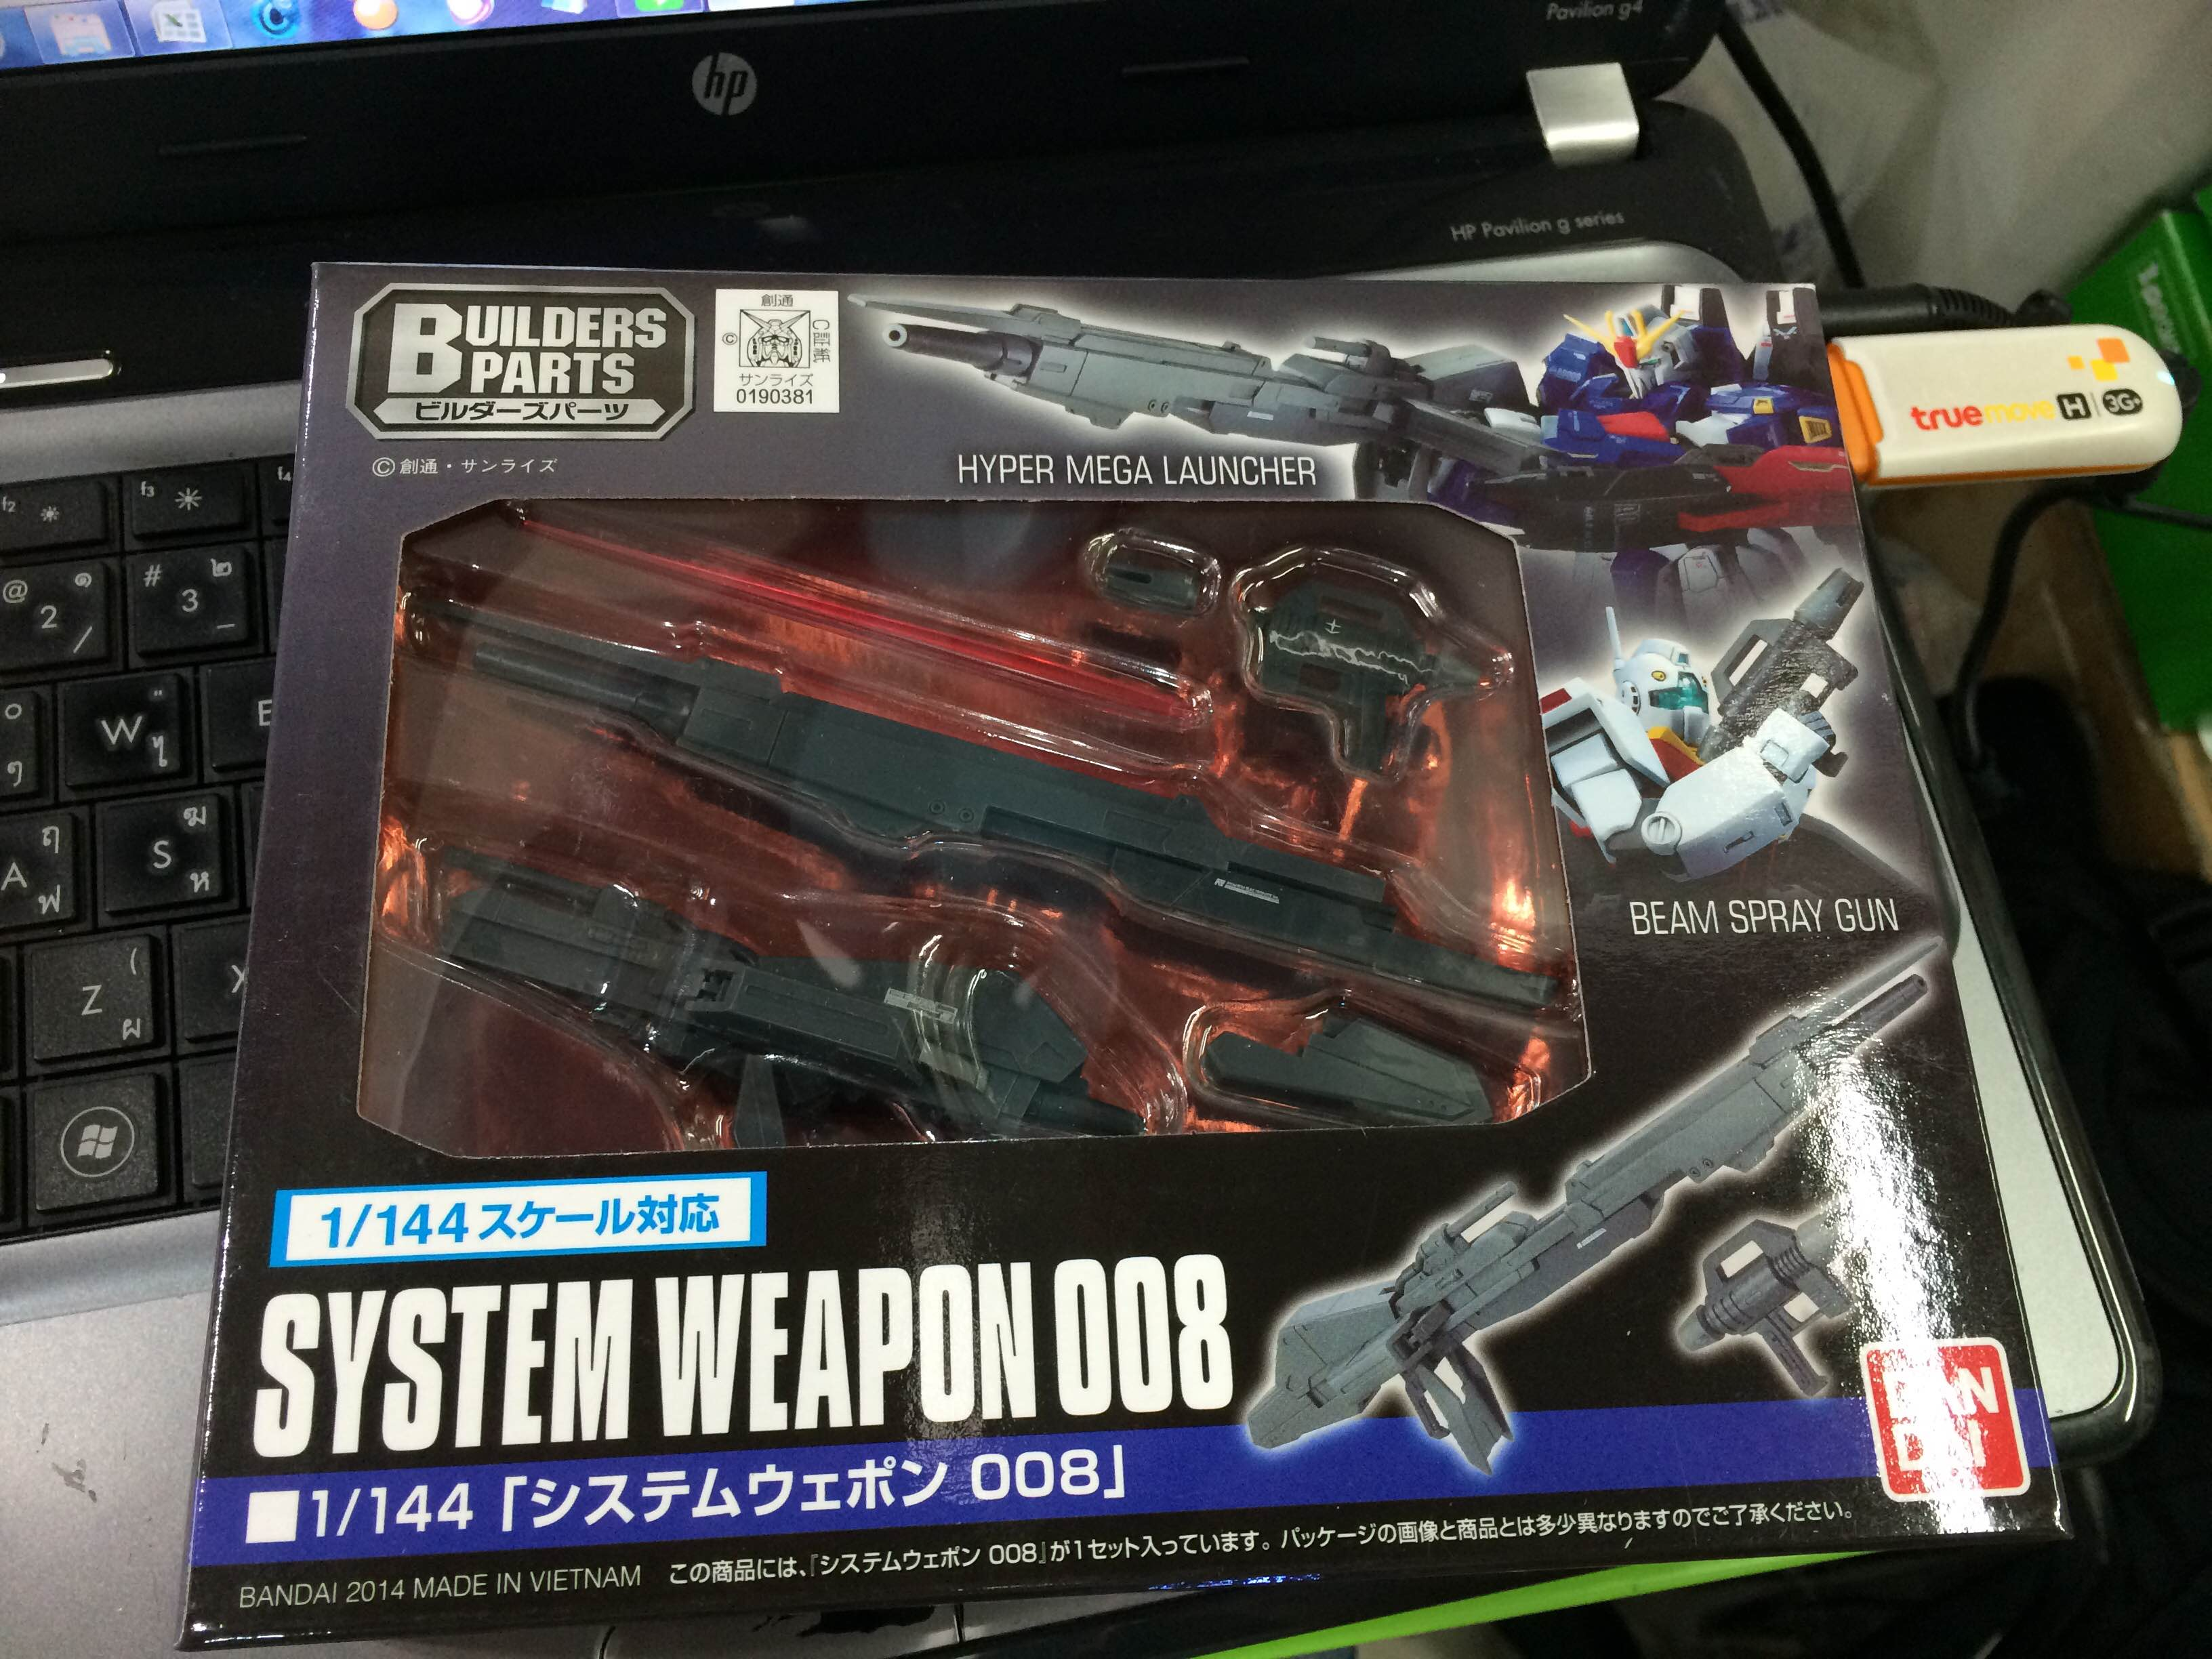 SYSTEM WEAPON 008